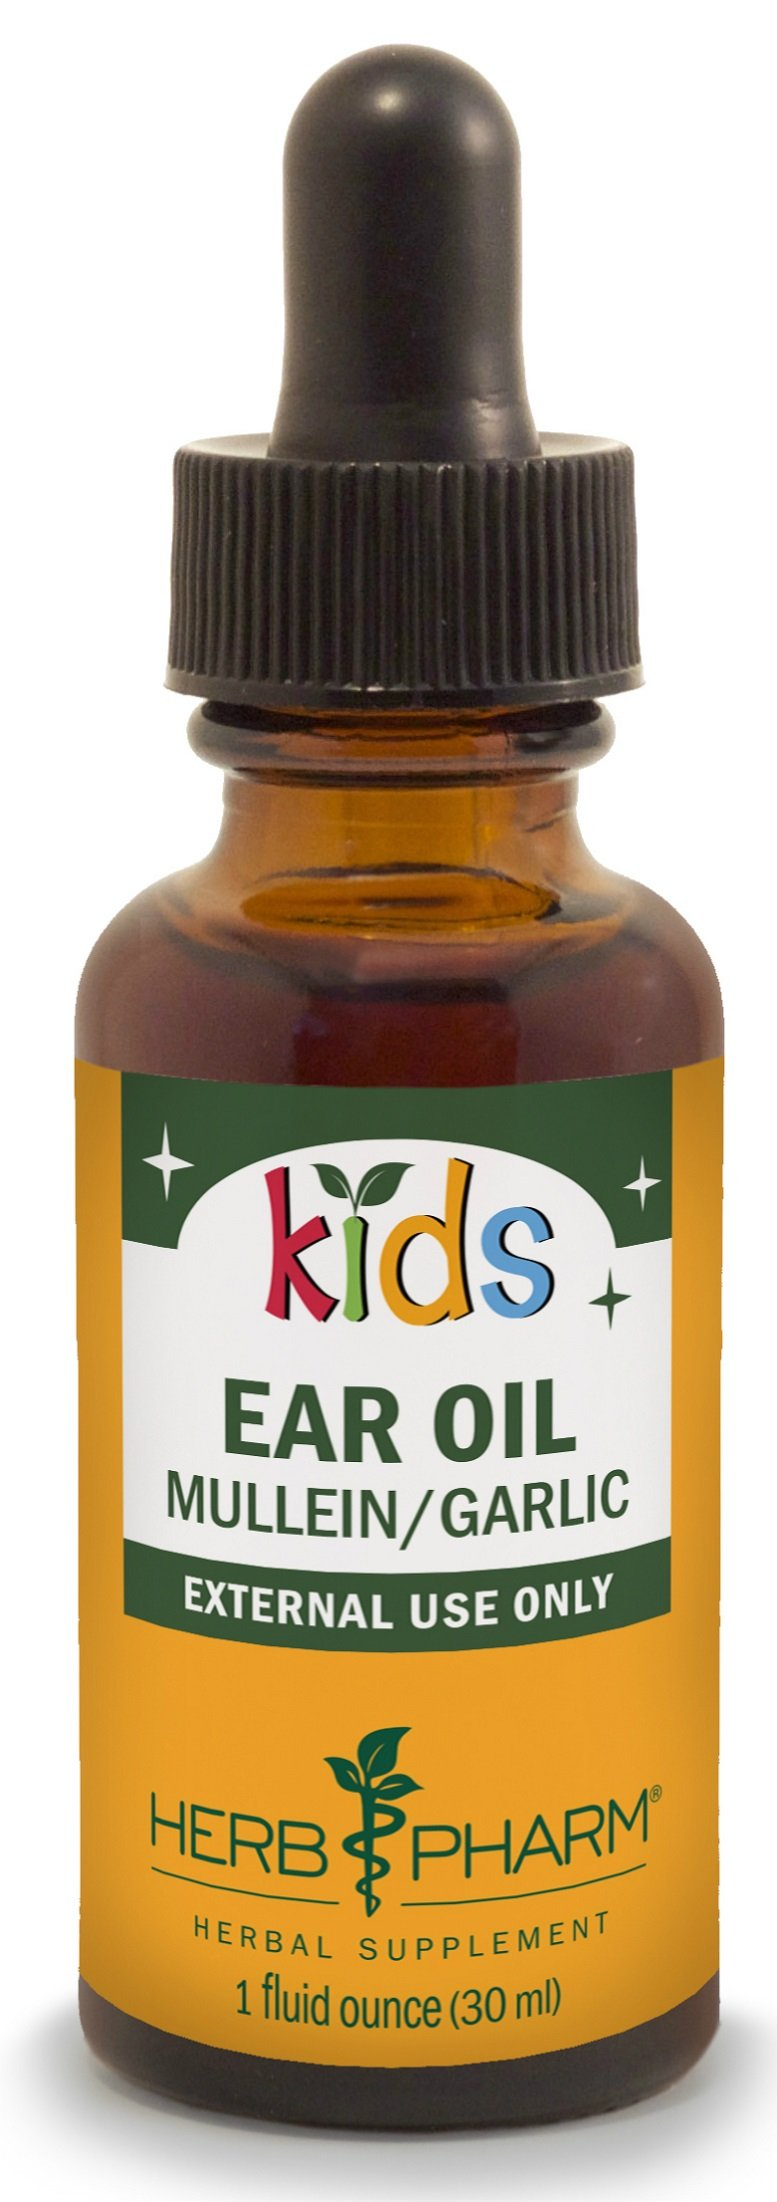 Herb Pharm Kids Ear Oil with Mullein and Garlic, 1 Ounce